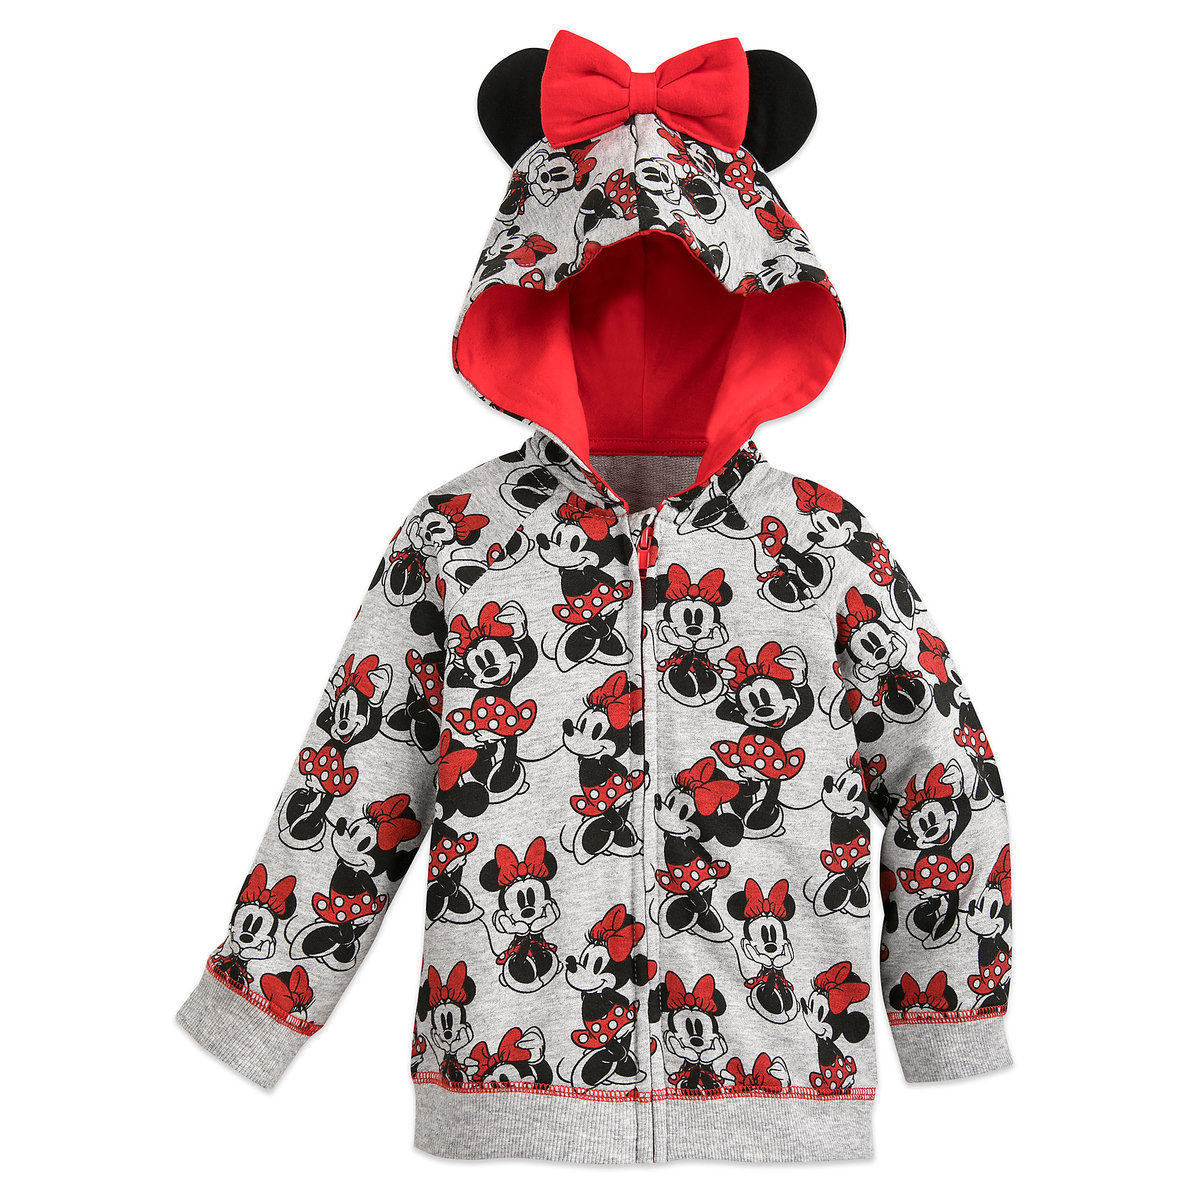 Top 25 Disney Gift Ideas for Babies featured by top US Disney blogger, Marcie and the Mouse: https://lumiere-a.akamaihd.net/v1/images/file_eecb836b.jpeg?width=1200&region=0%2C0%2C2000%2C2000